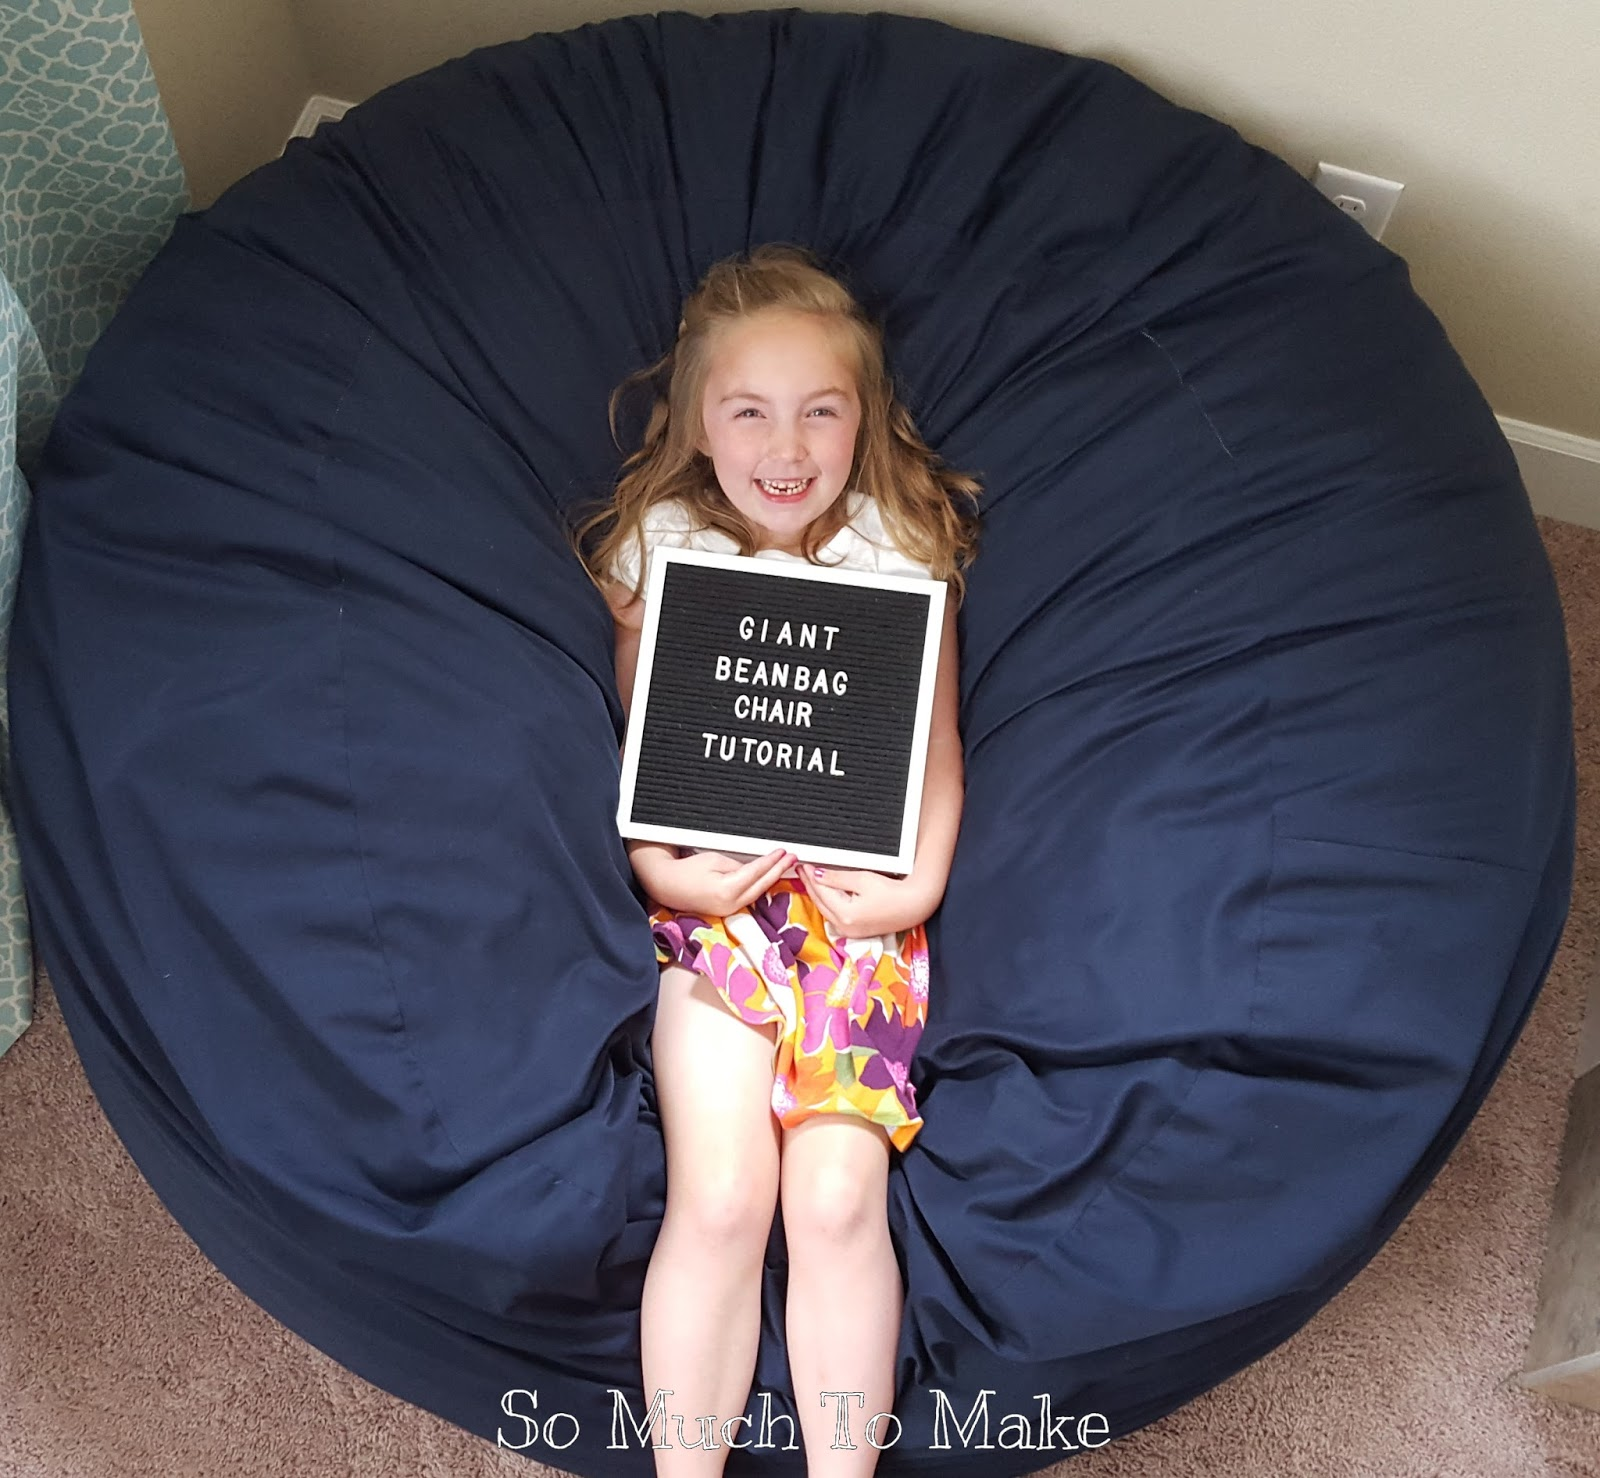 Peachy Giant Bean Bag Chair Tutorial So Much To Make Ocoug Best Dining Table And Chair Ideas Images Ocougorg